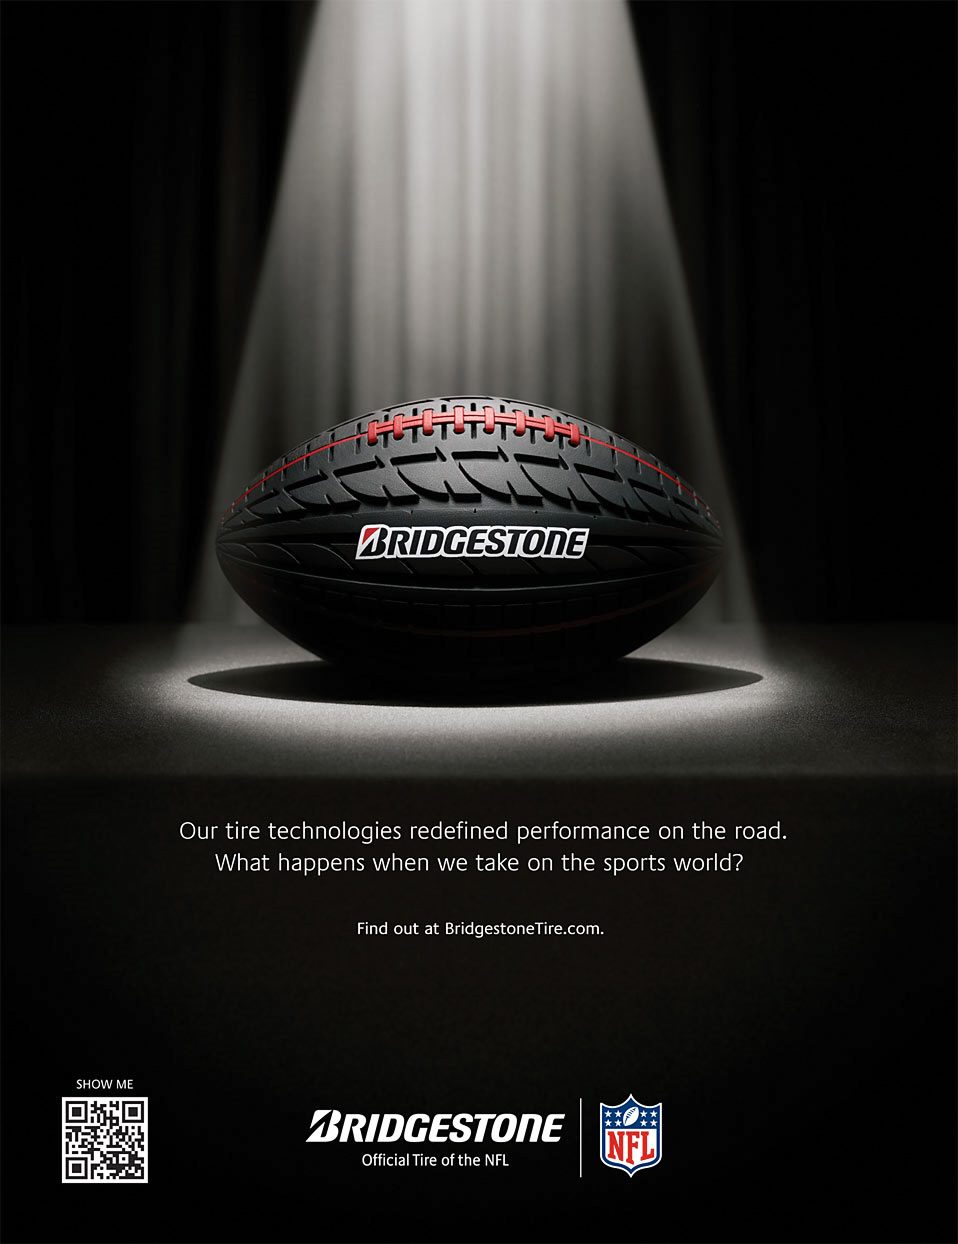 Mark DeLong - Commercial Photography - Rugby ball that is made from tire tread sits in the spotlight.